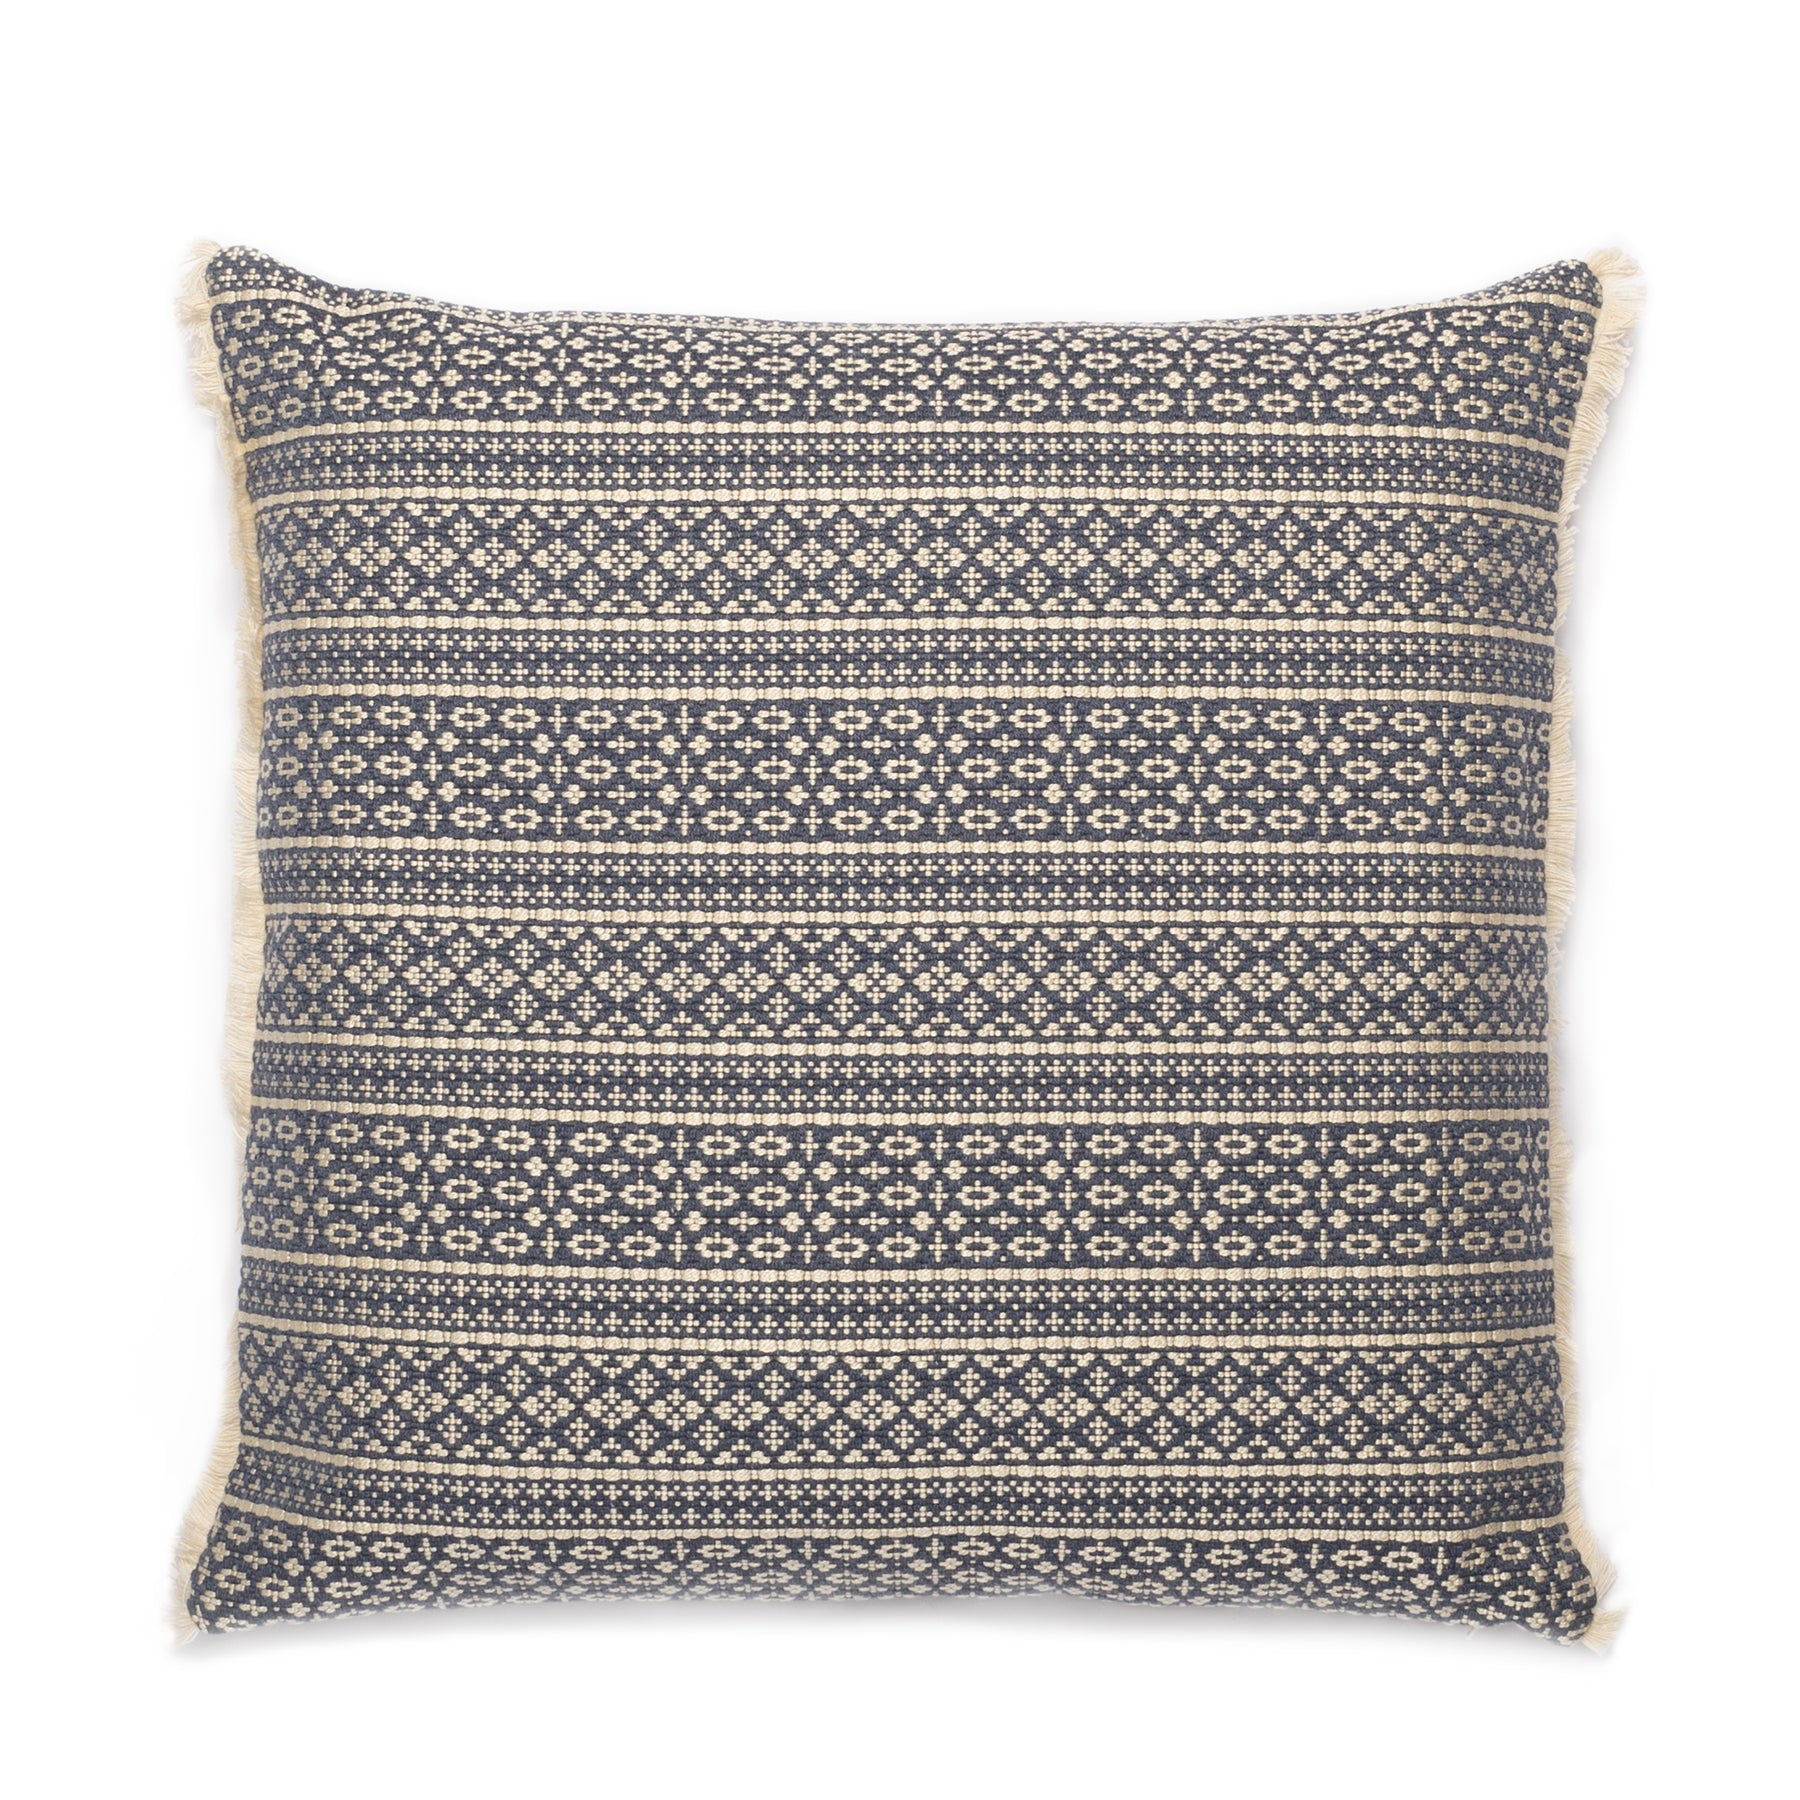 Stitched Pillow in Juniper Berry Zoom Image 1